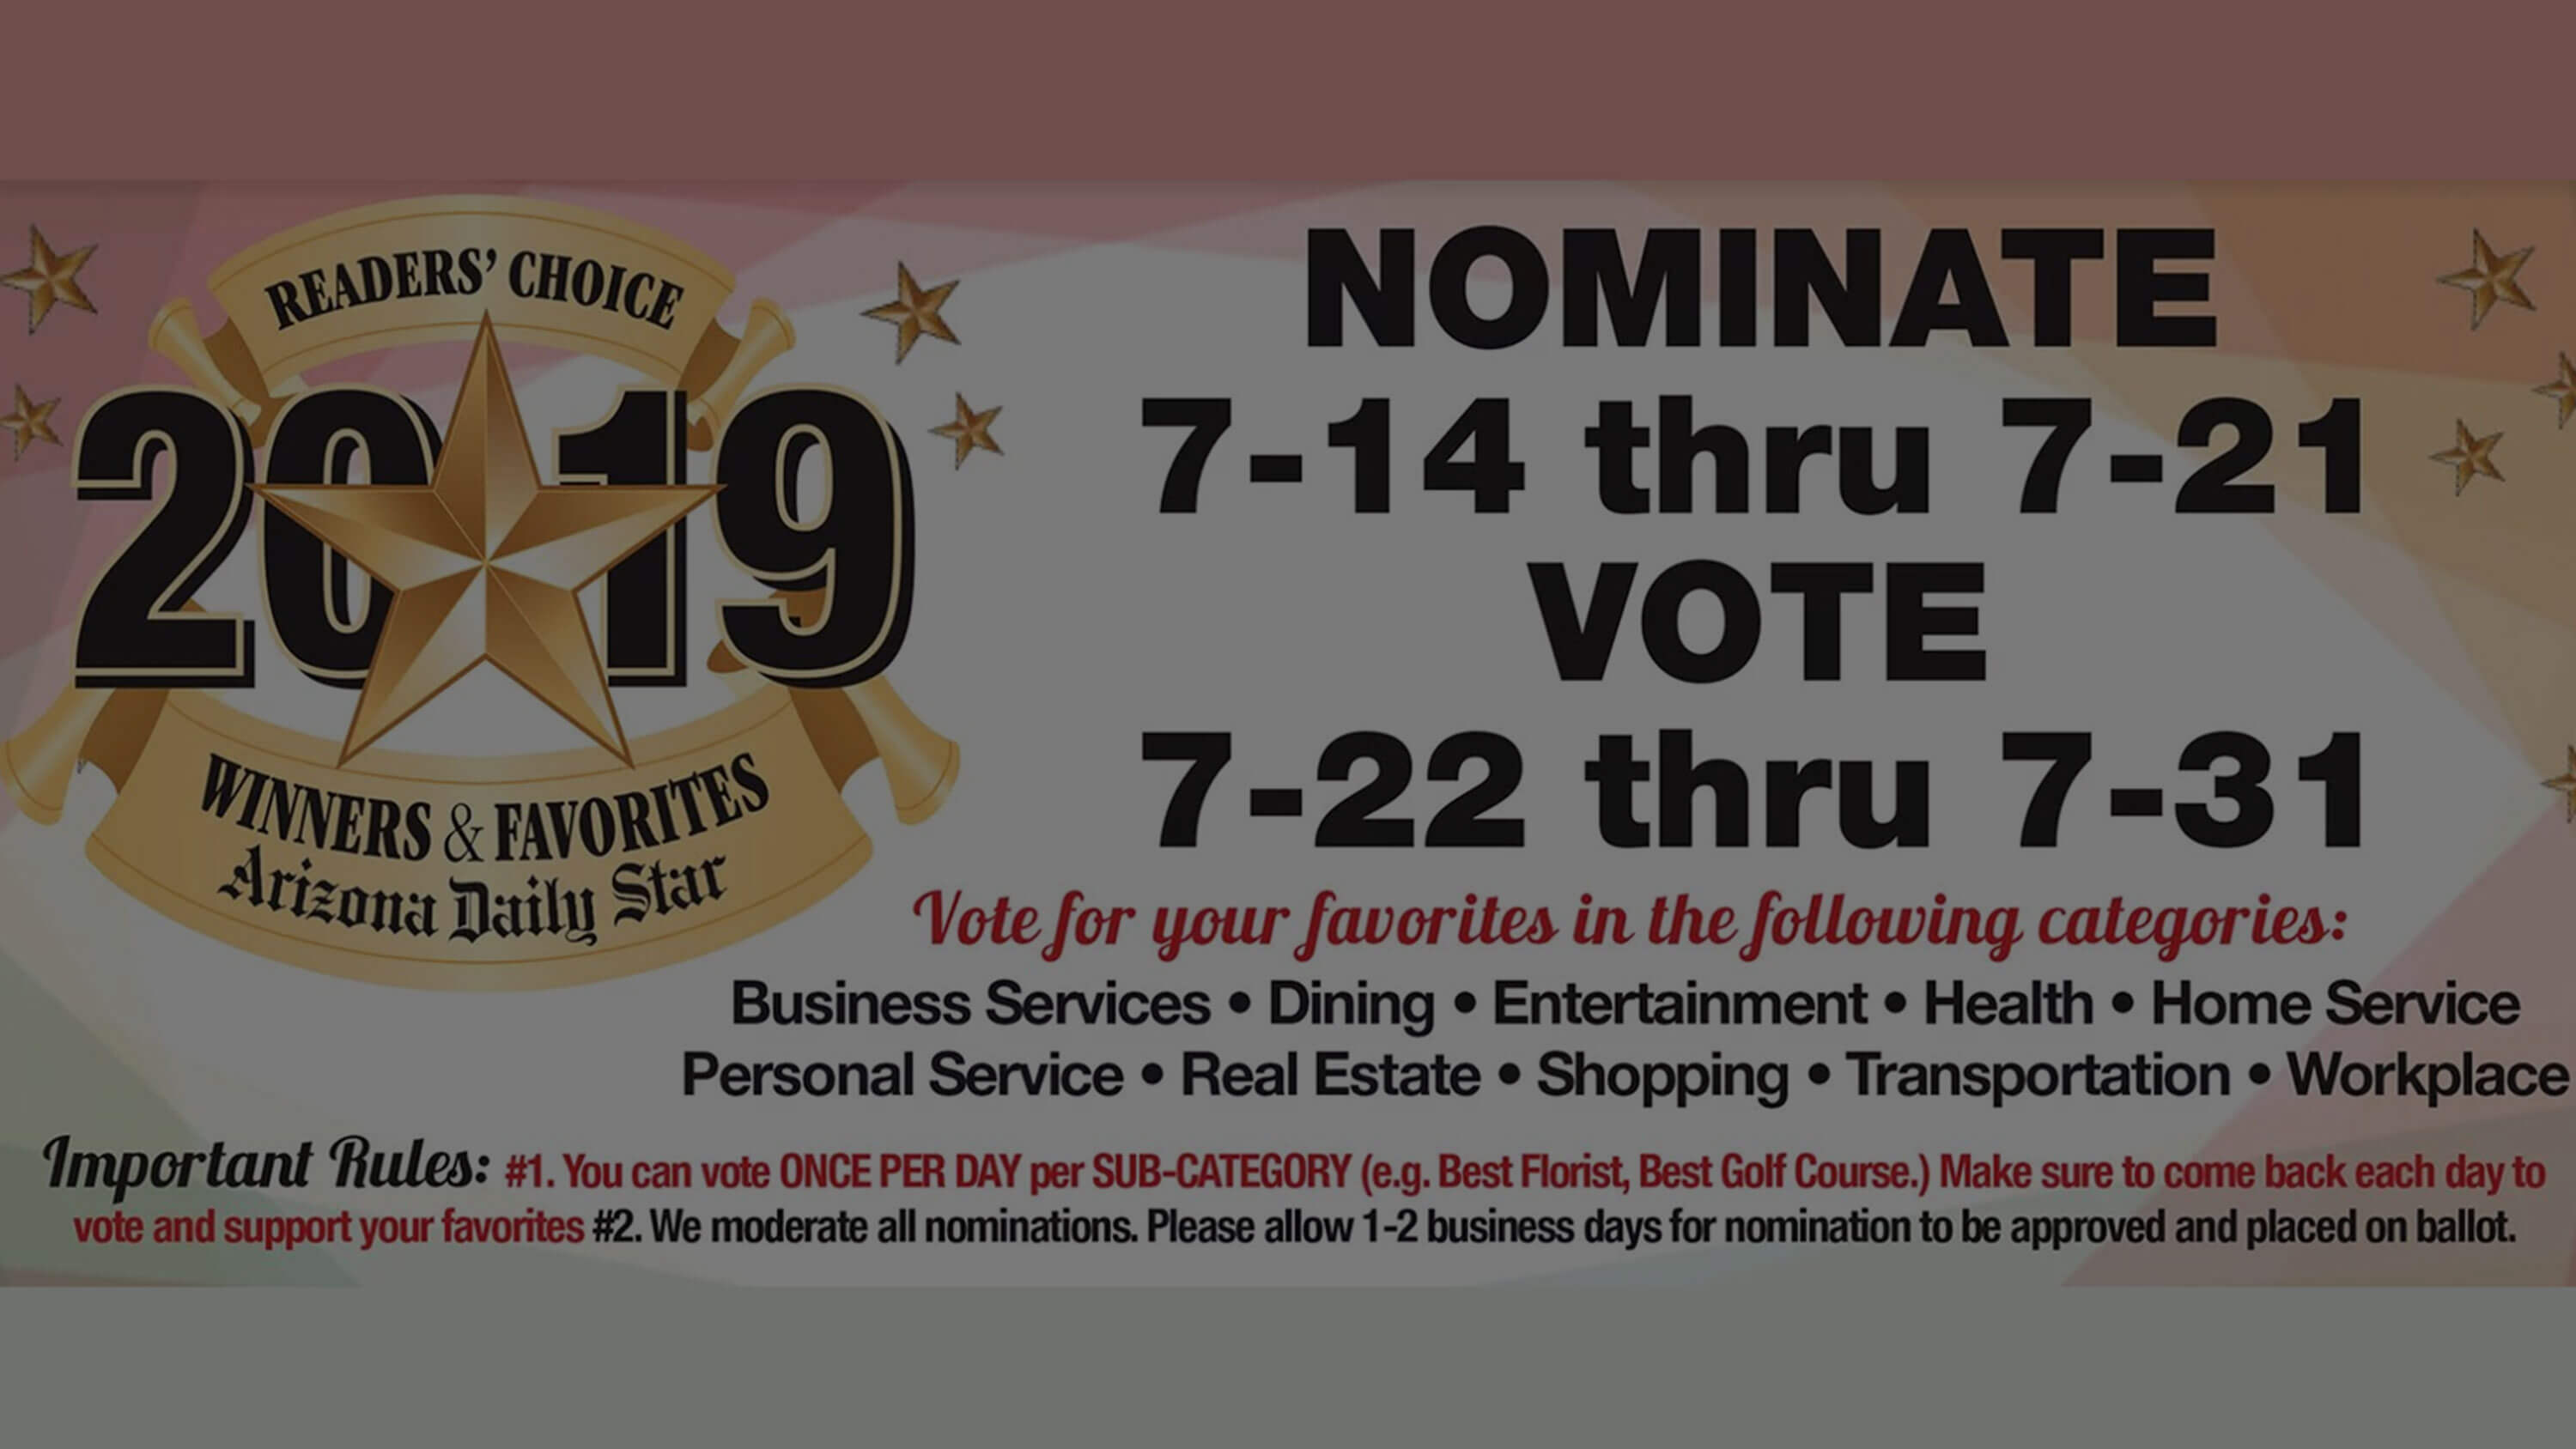 2019 Reader's Choice Award<br>Vote Today!